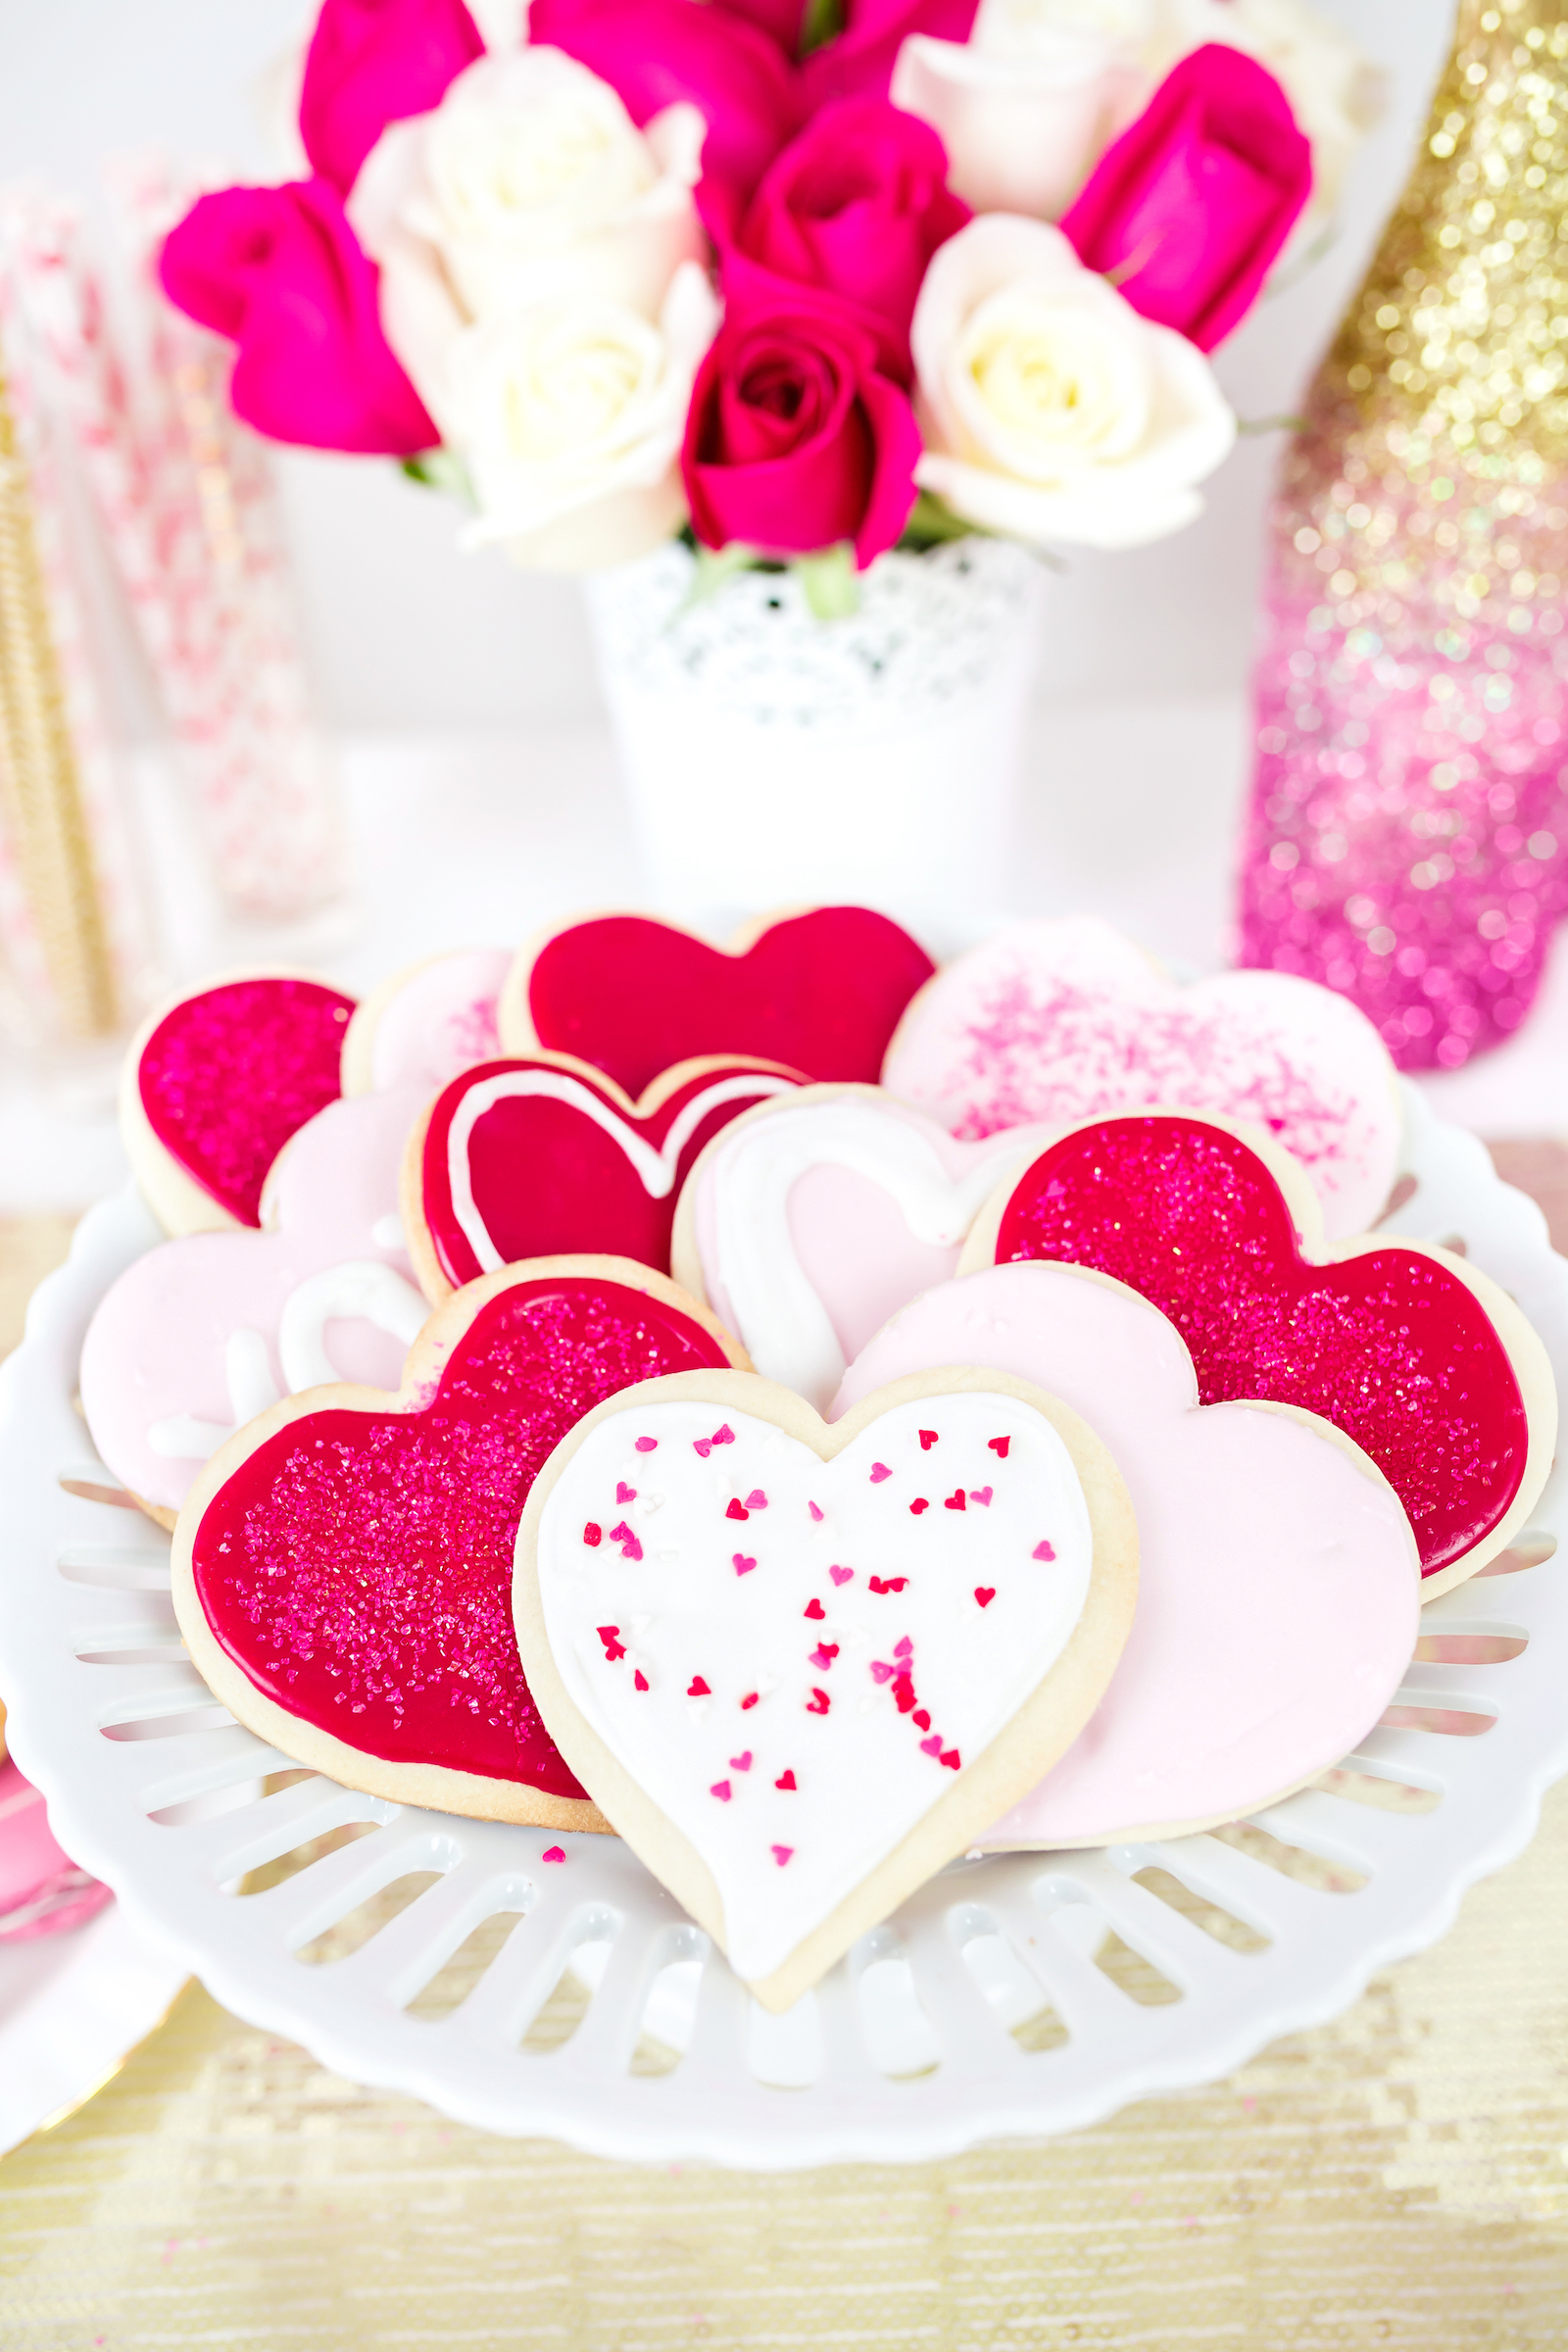 Valentines Day Treats - Heart cookies